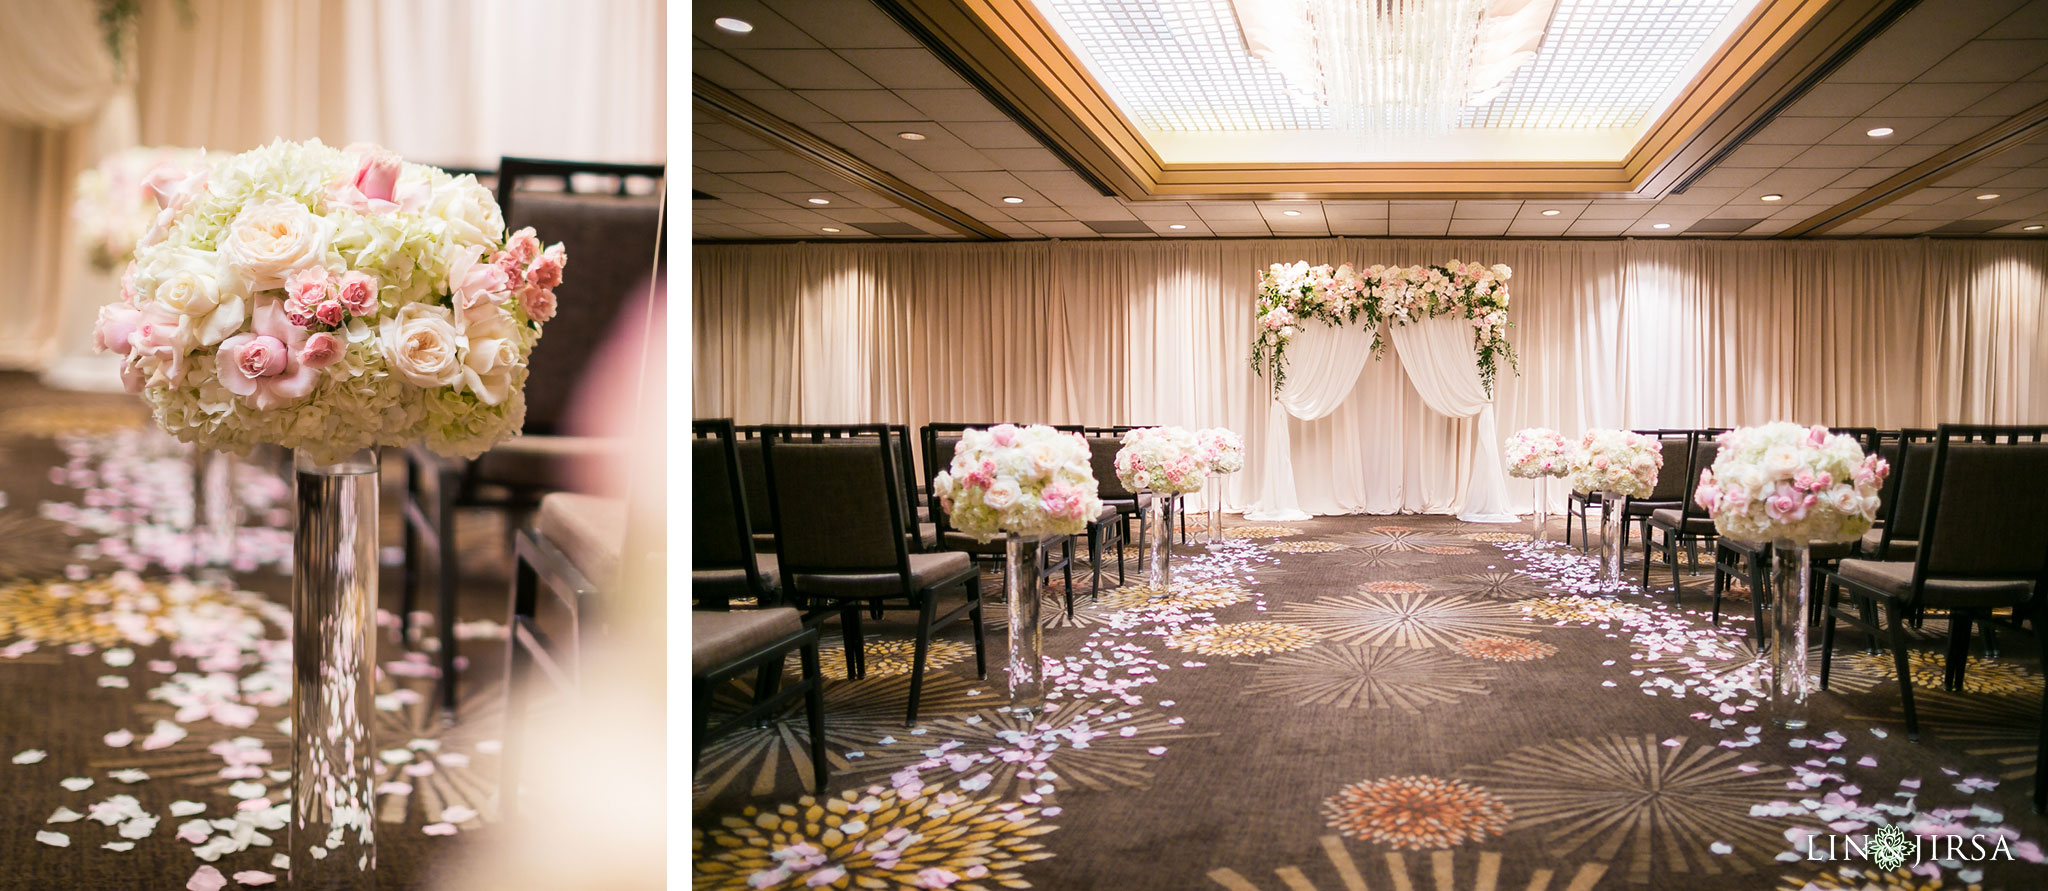 23 hilton costa mesa wedding ceremony photography